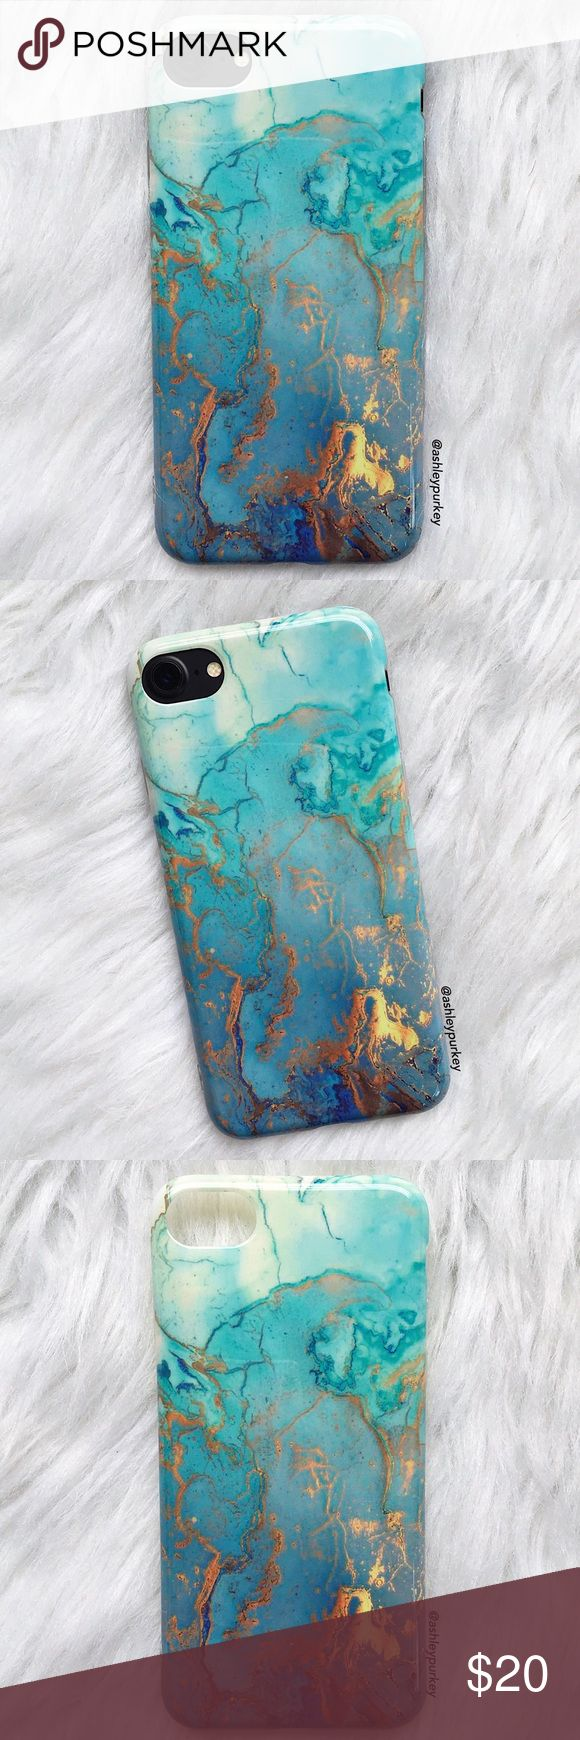 "❤️SALE❤️ blue gold swirled marble iPhone 7 case •iPhone 7 (4.7"")  •flexible silicone   •phone not included   •no trades    *please make sure you purchase the correct size case. i am not responsible if you purchase the wrong size  item #: 80 B-Long Boutique  Accessories Phone Cases"